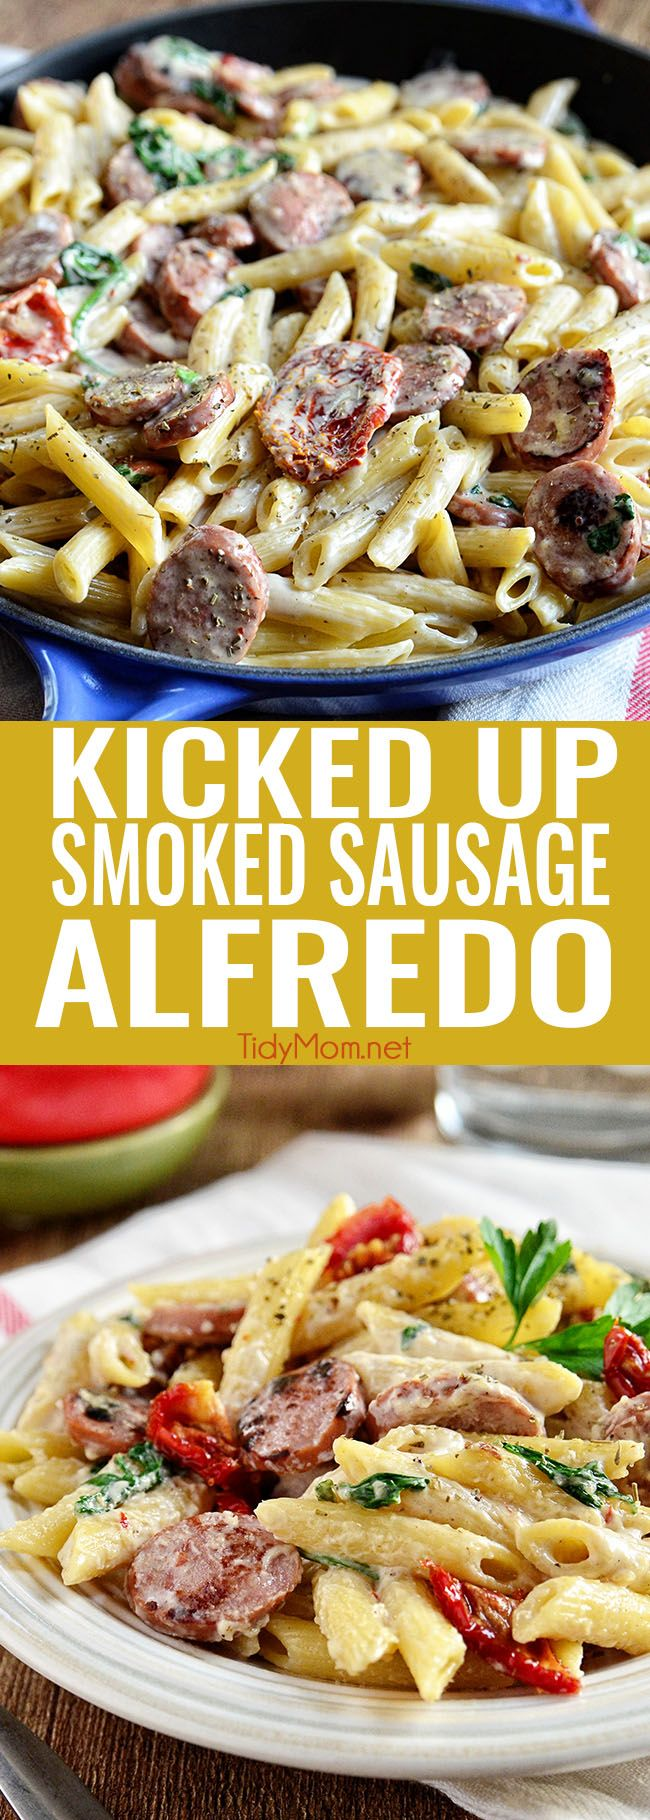 Savory smoked turkey sausage combined with sun-dried tomatoes, garlic, spinach, and Parmesan cheese make this a sensational 15-minute Smoked Sausage Alfredo recipe the whole family will love. Get the full printable recipe at TidyMom.net